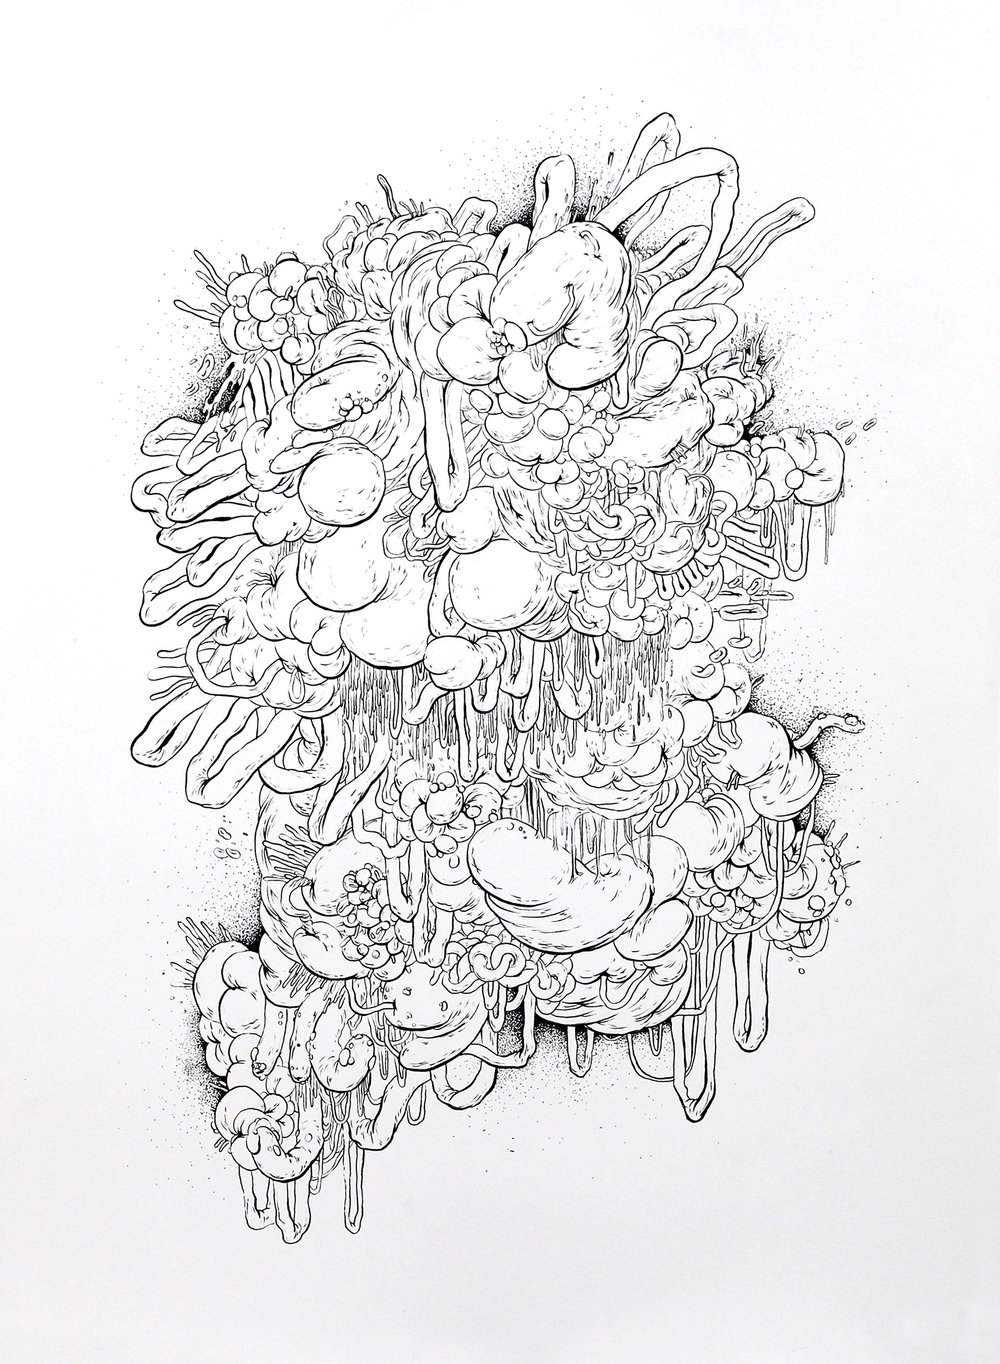 Mish-Mash No. 1,  ink on paper, 30 x 25.5 in